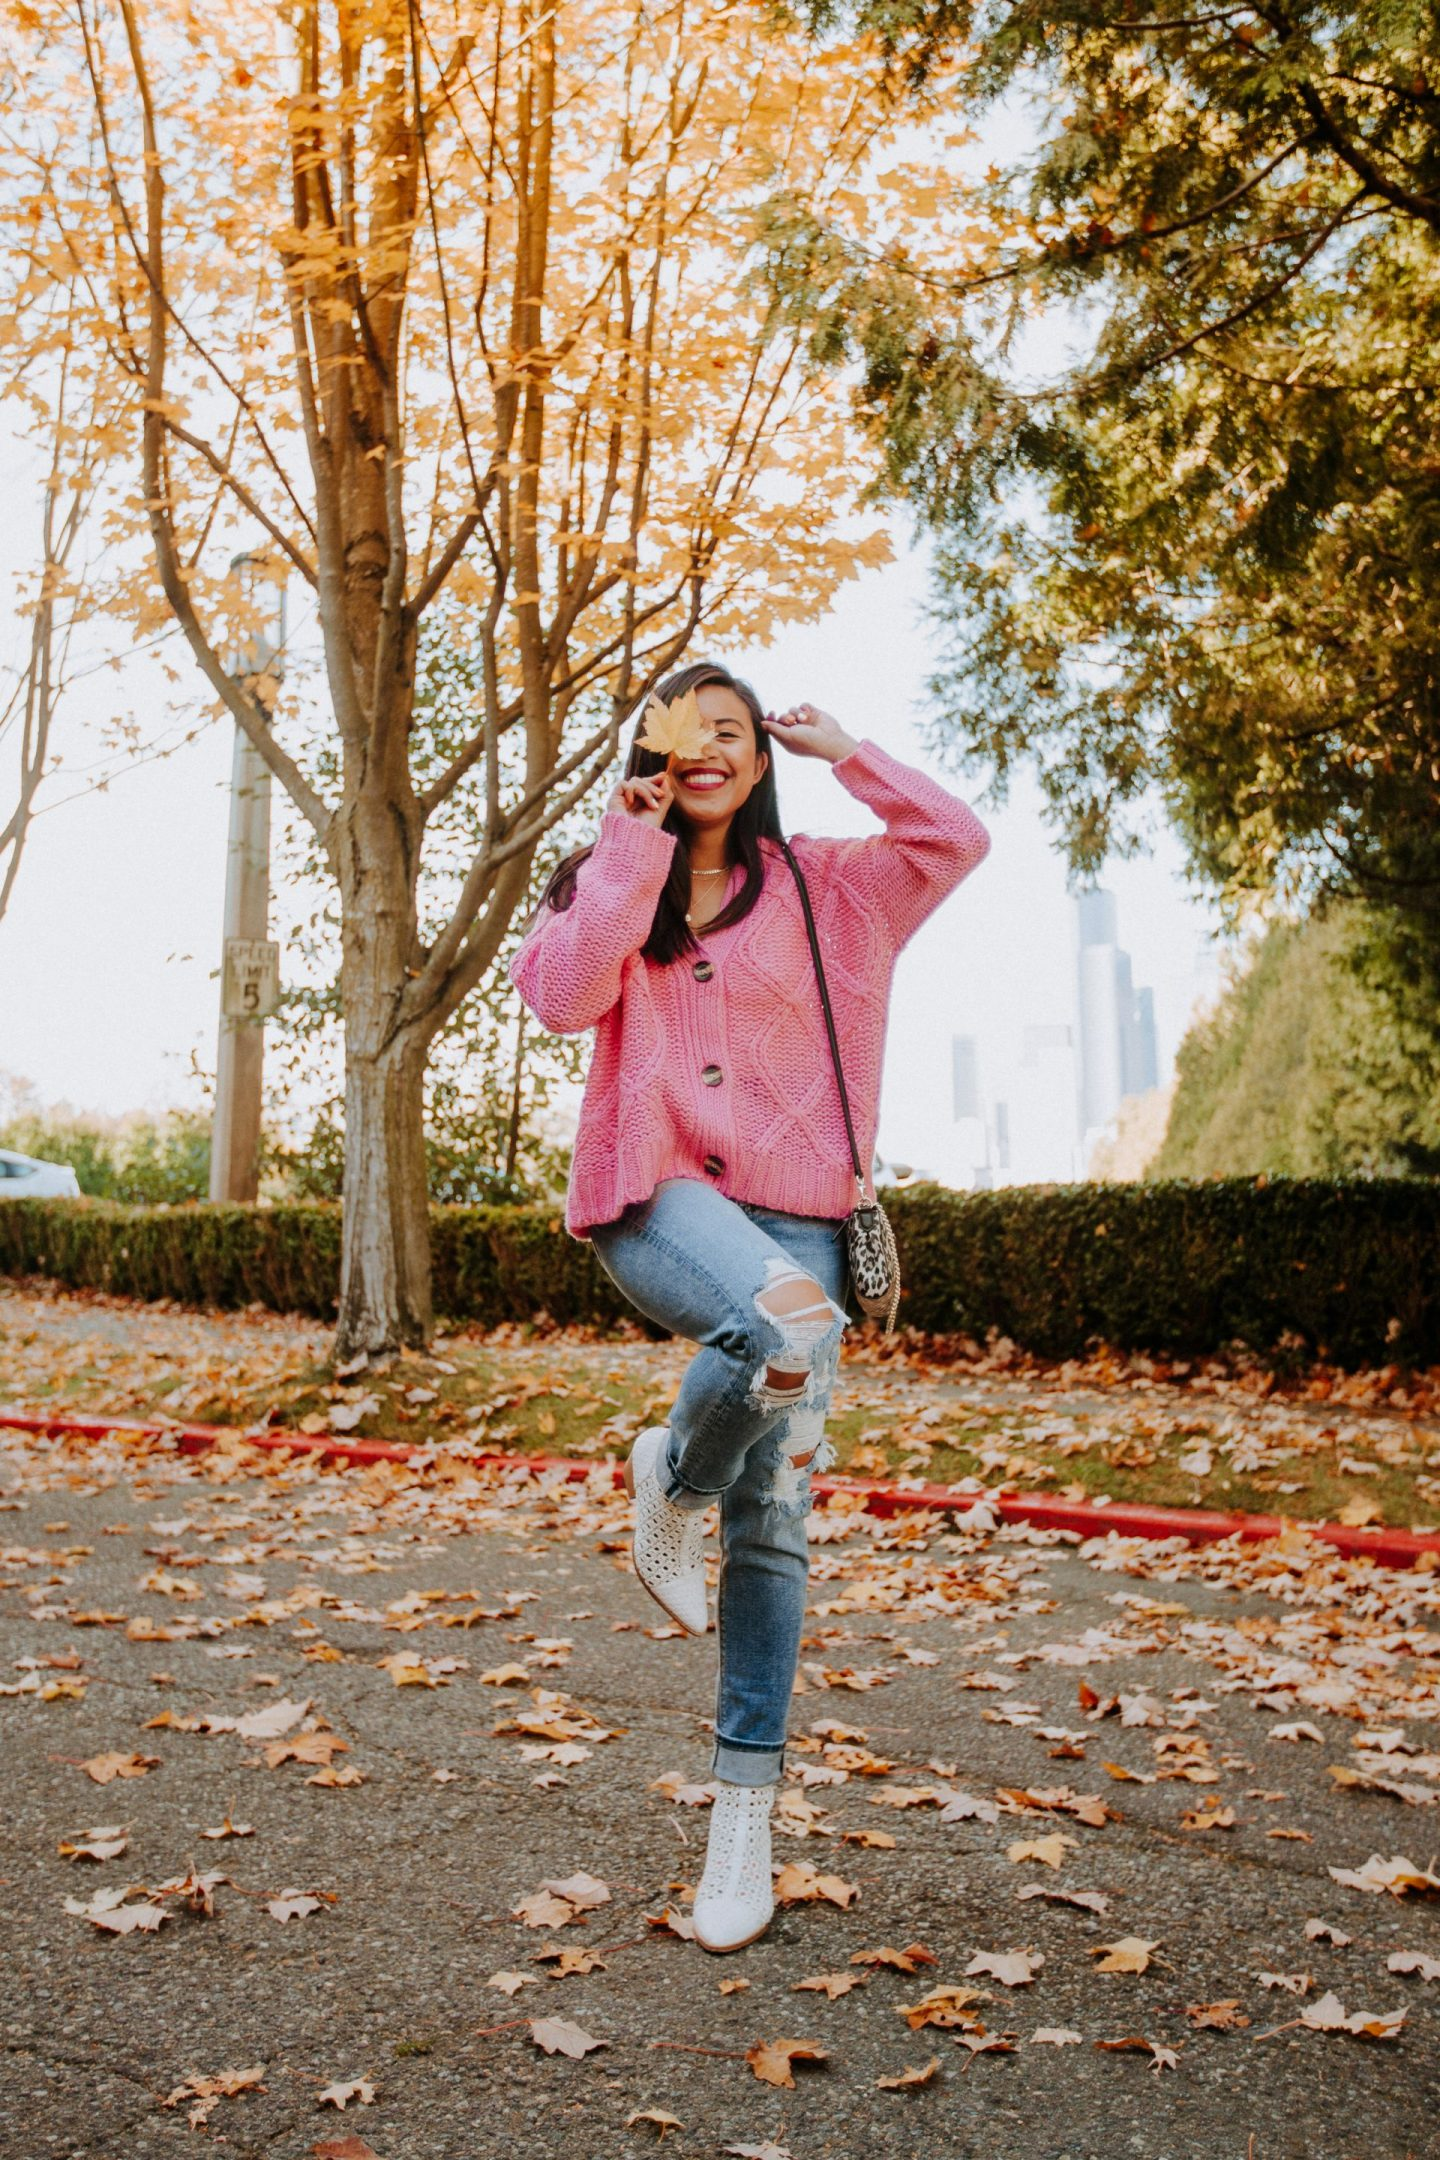 Emma's Edition - Stitch Fix - Fall Outfit Ideas - Seattle Blogger